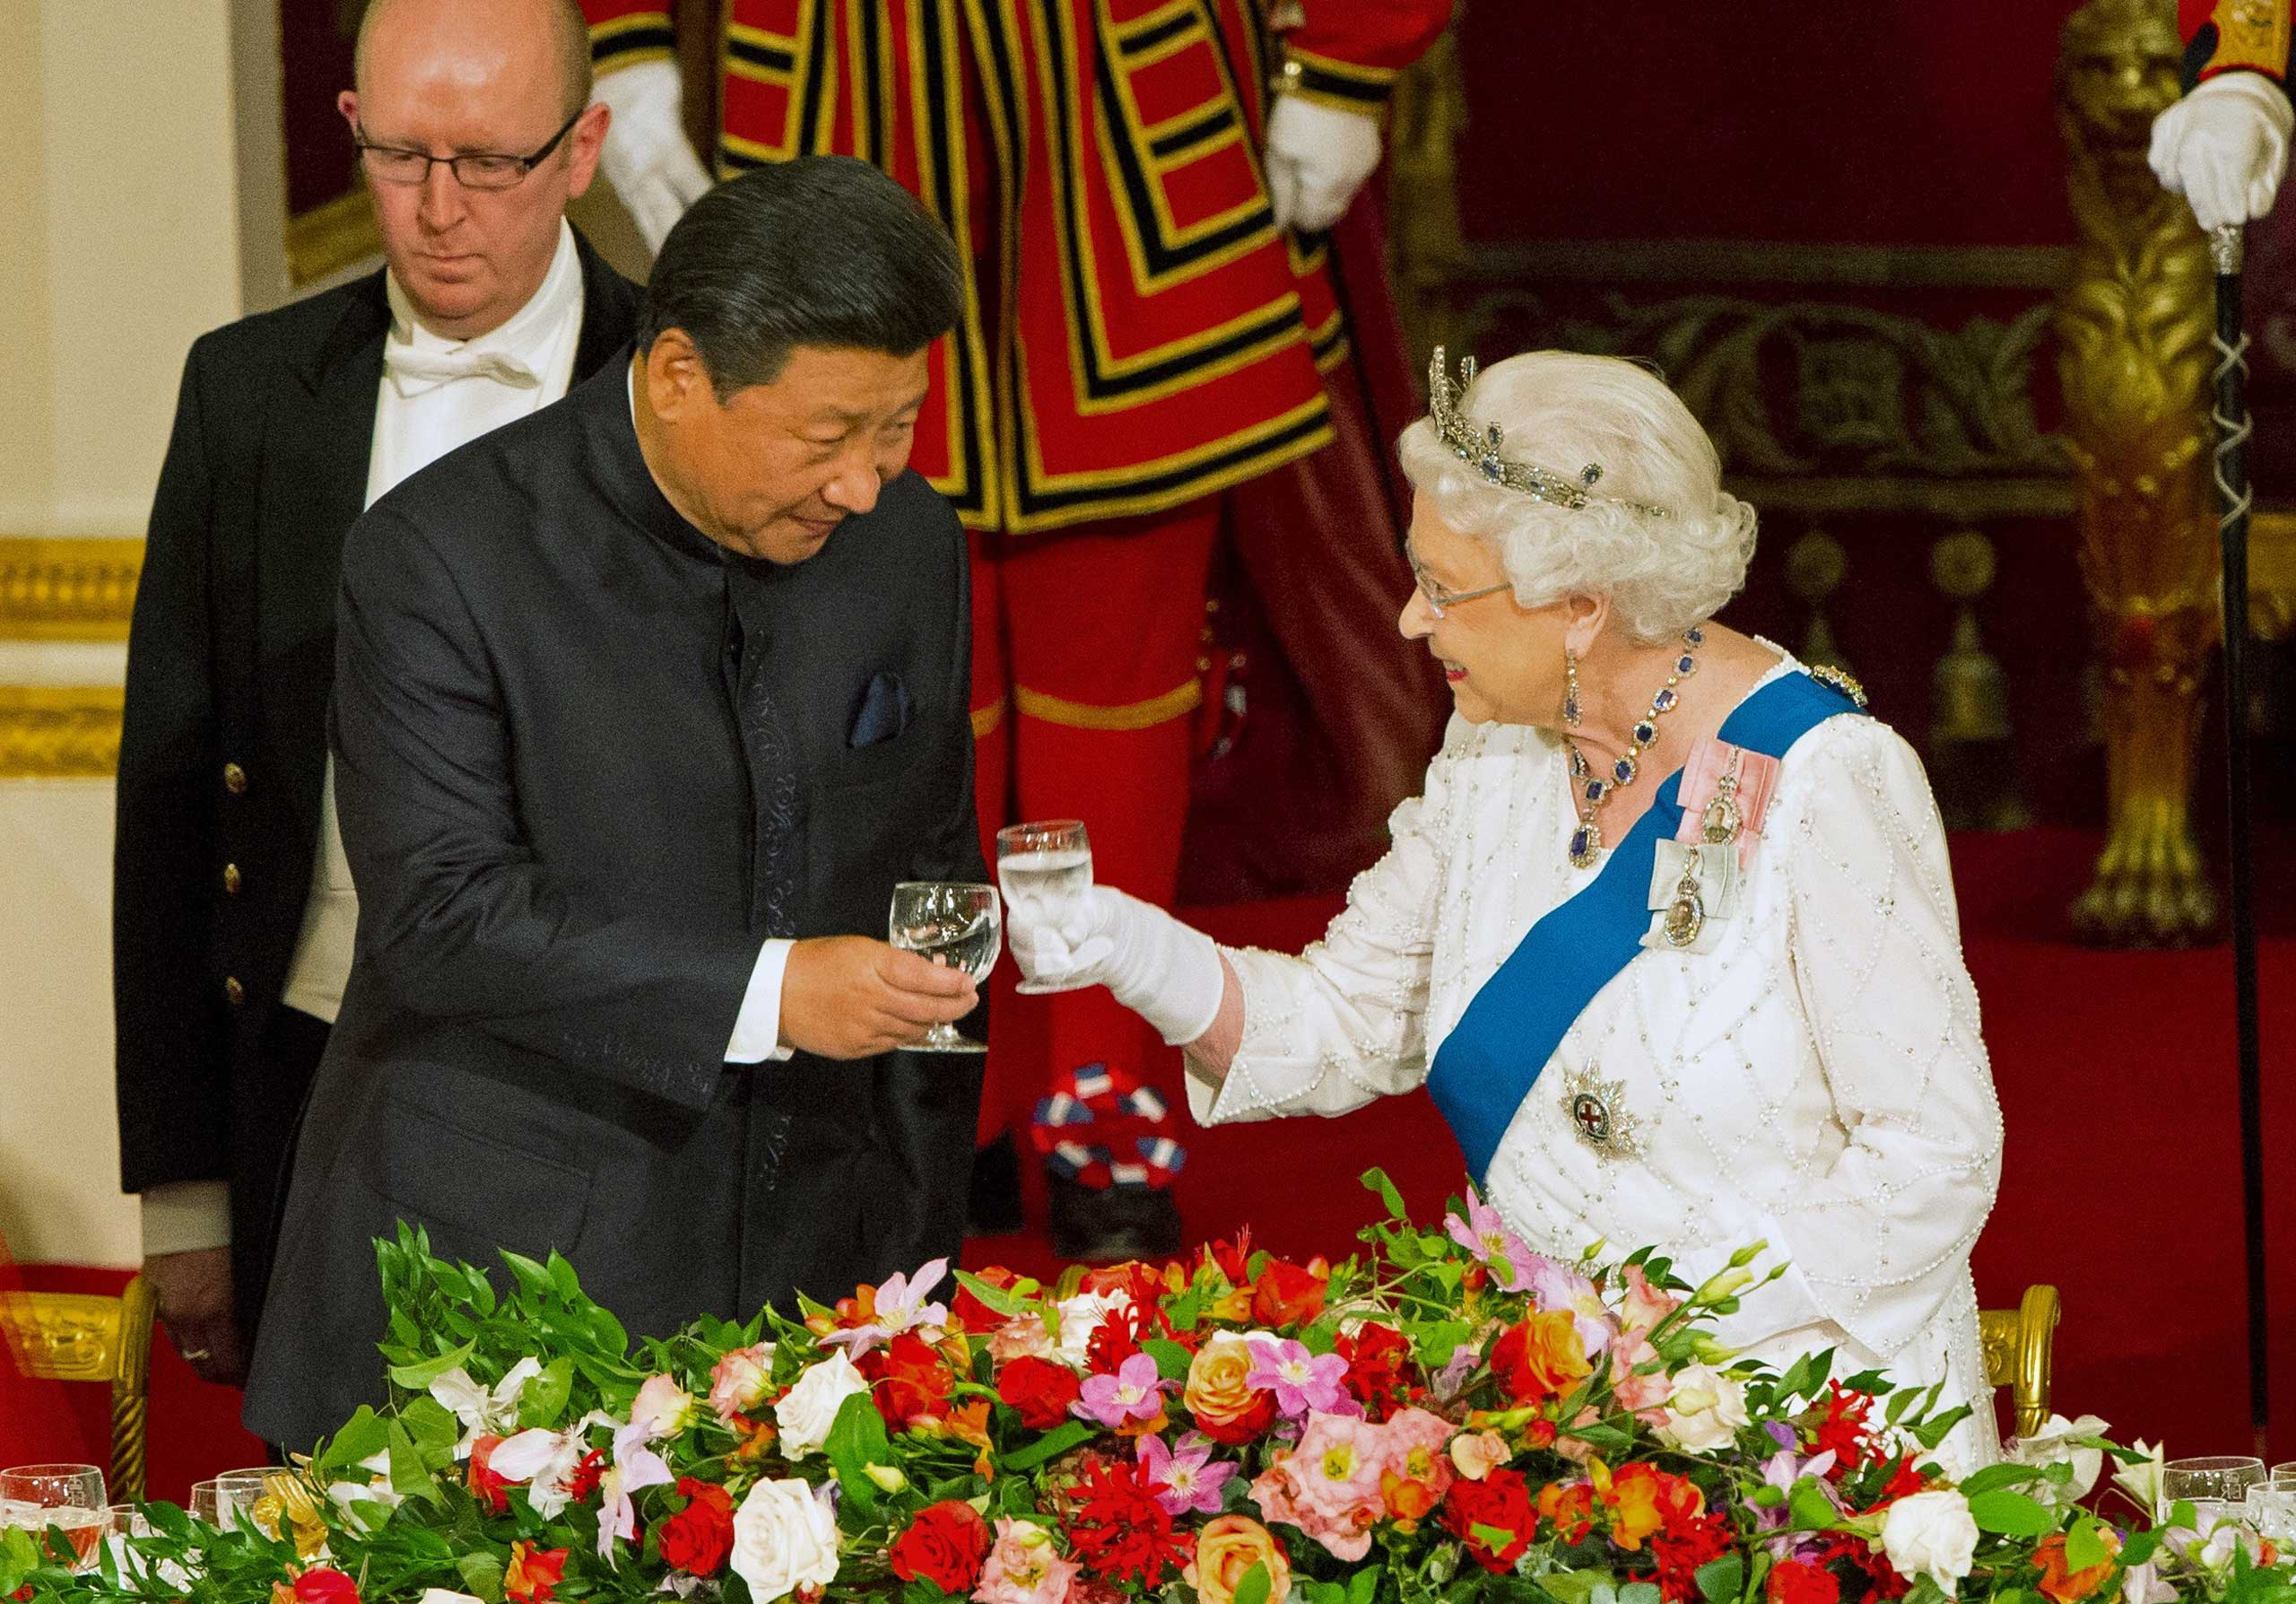 President Xi Jinping with Queen Elizabeth II at a state banquet at Buckingham Palace, in London, on Oct. 20, 2015.